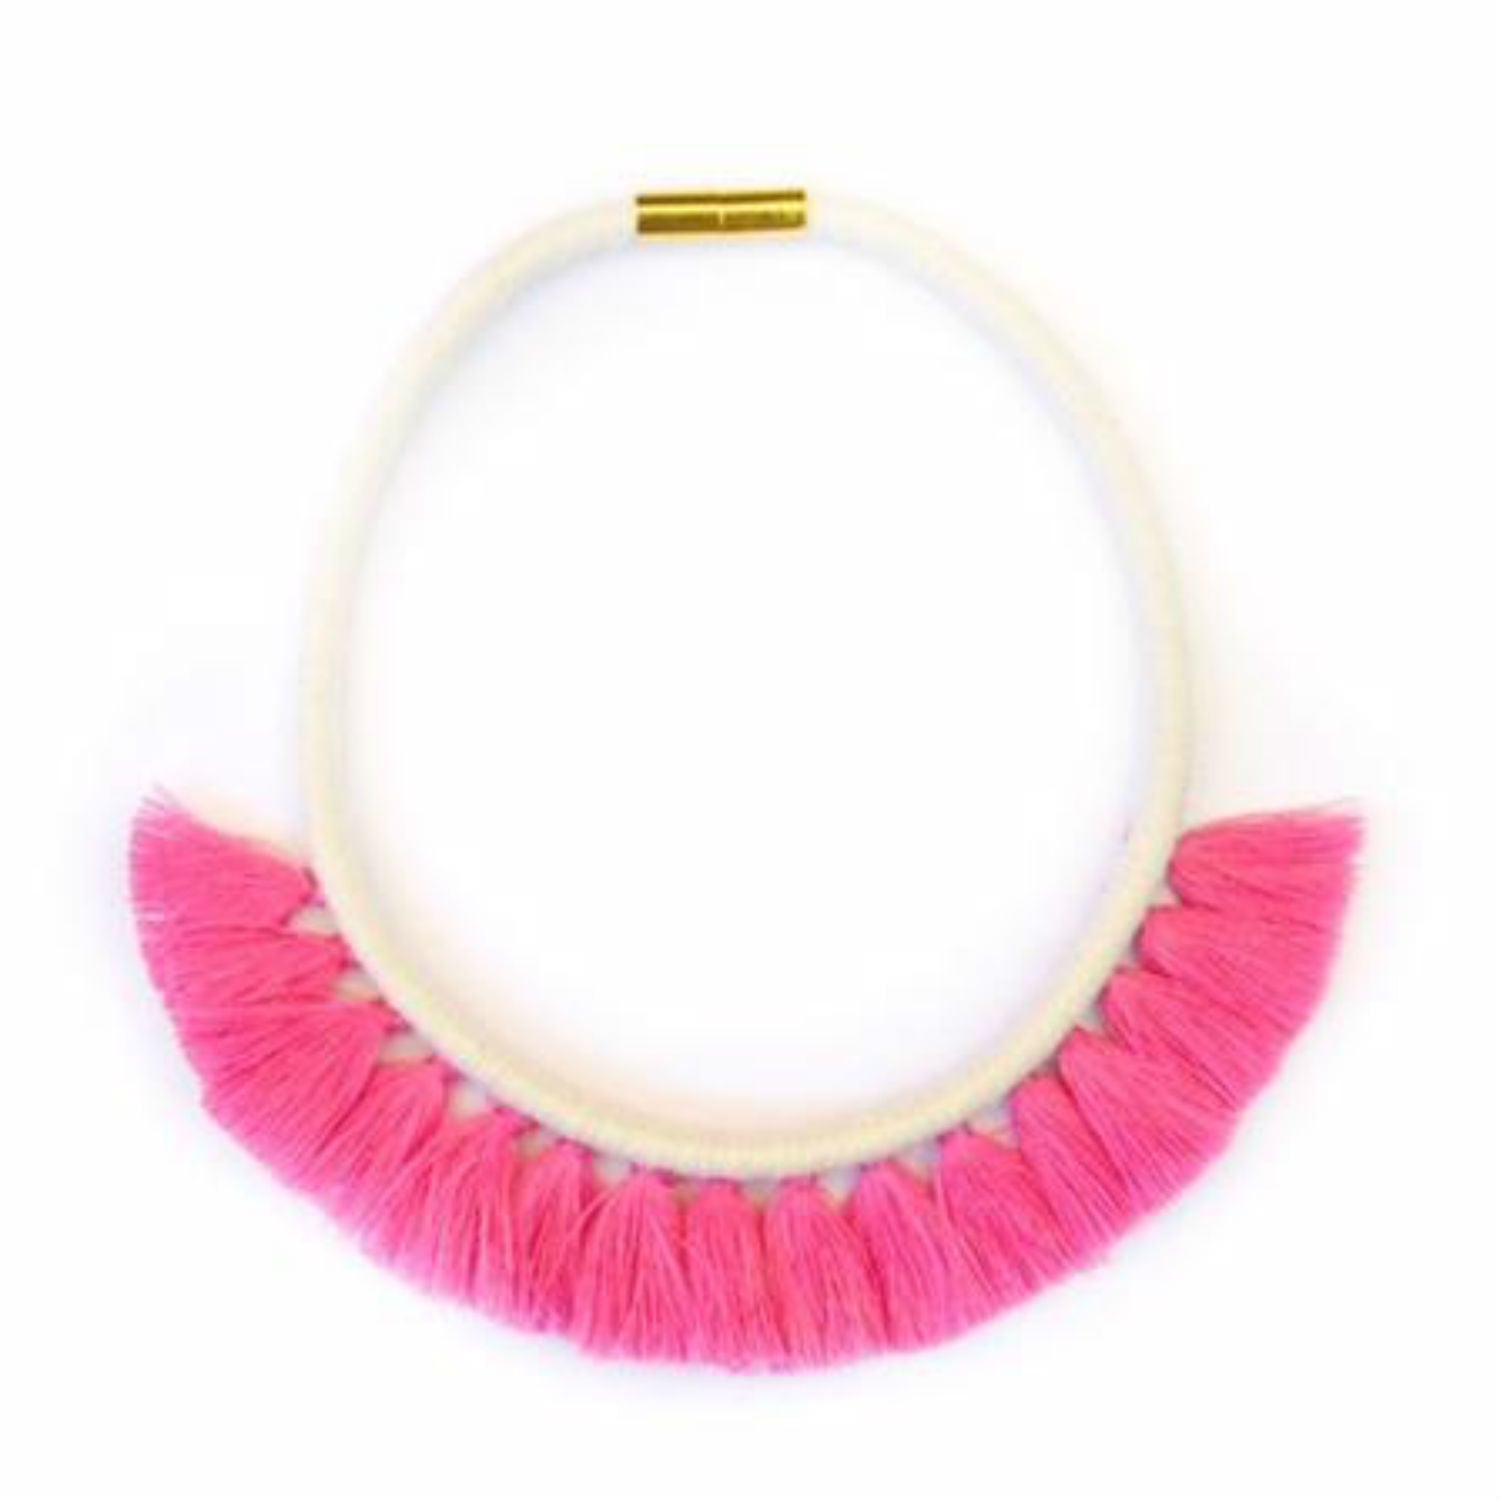 G+F Tassel Necklace - Fushia